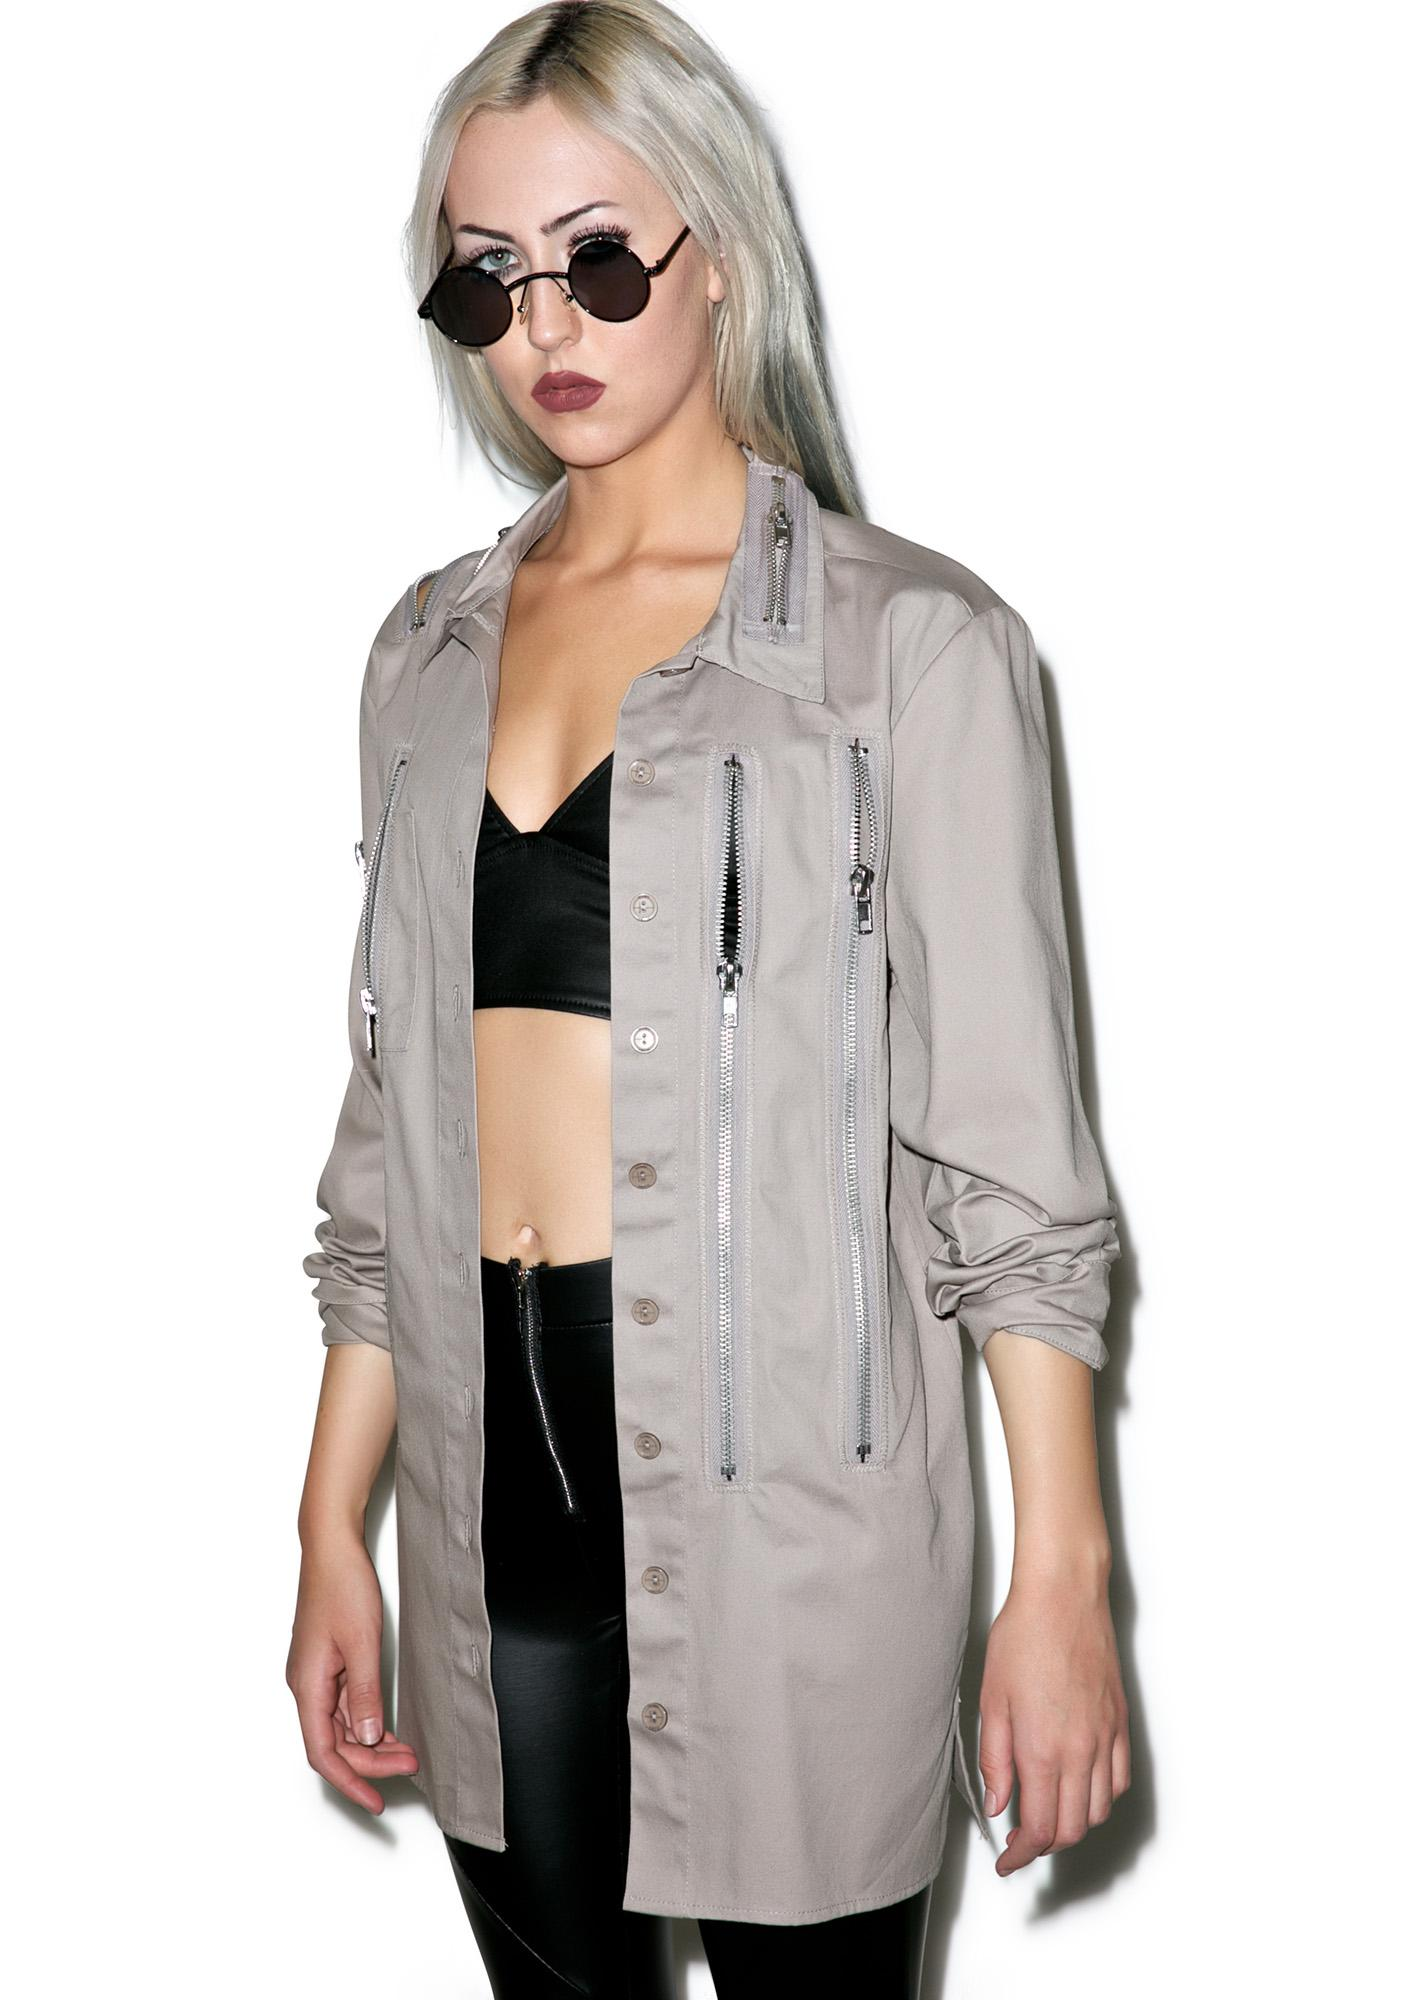 Widow Sandstorm Zipper Head Button Up Top